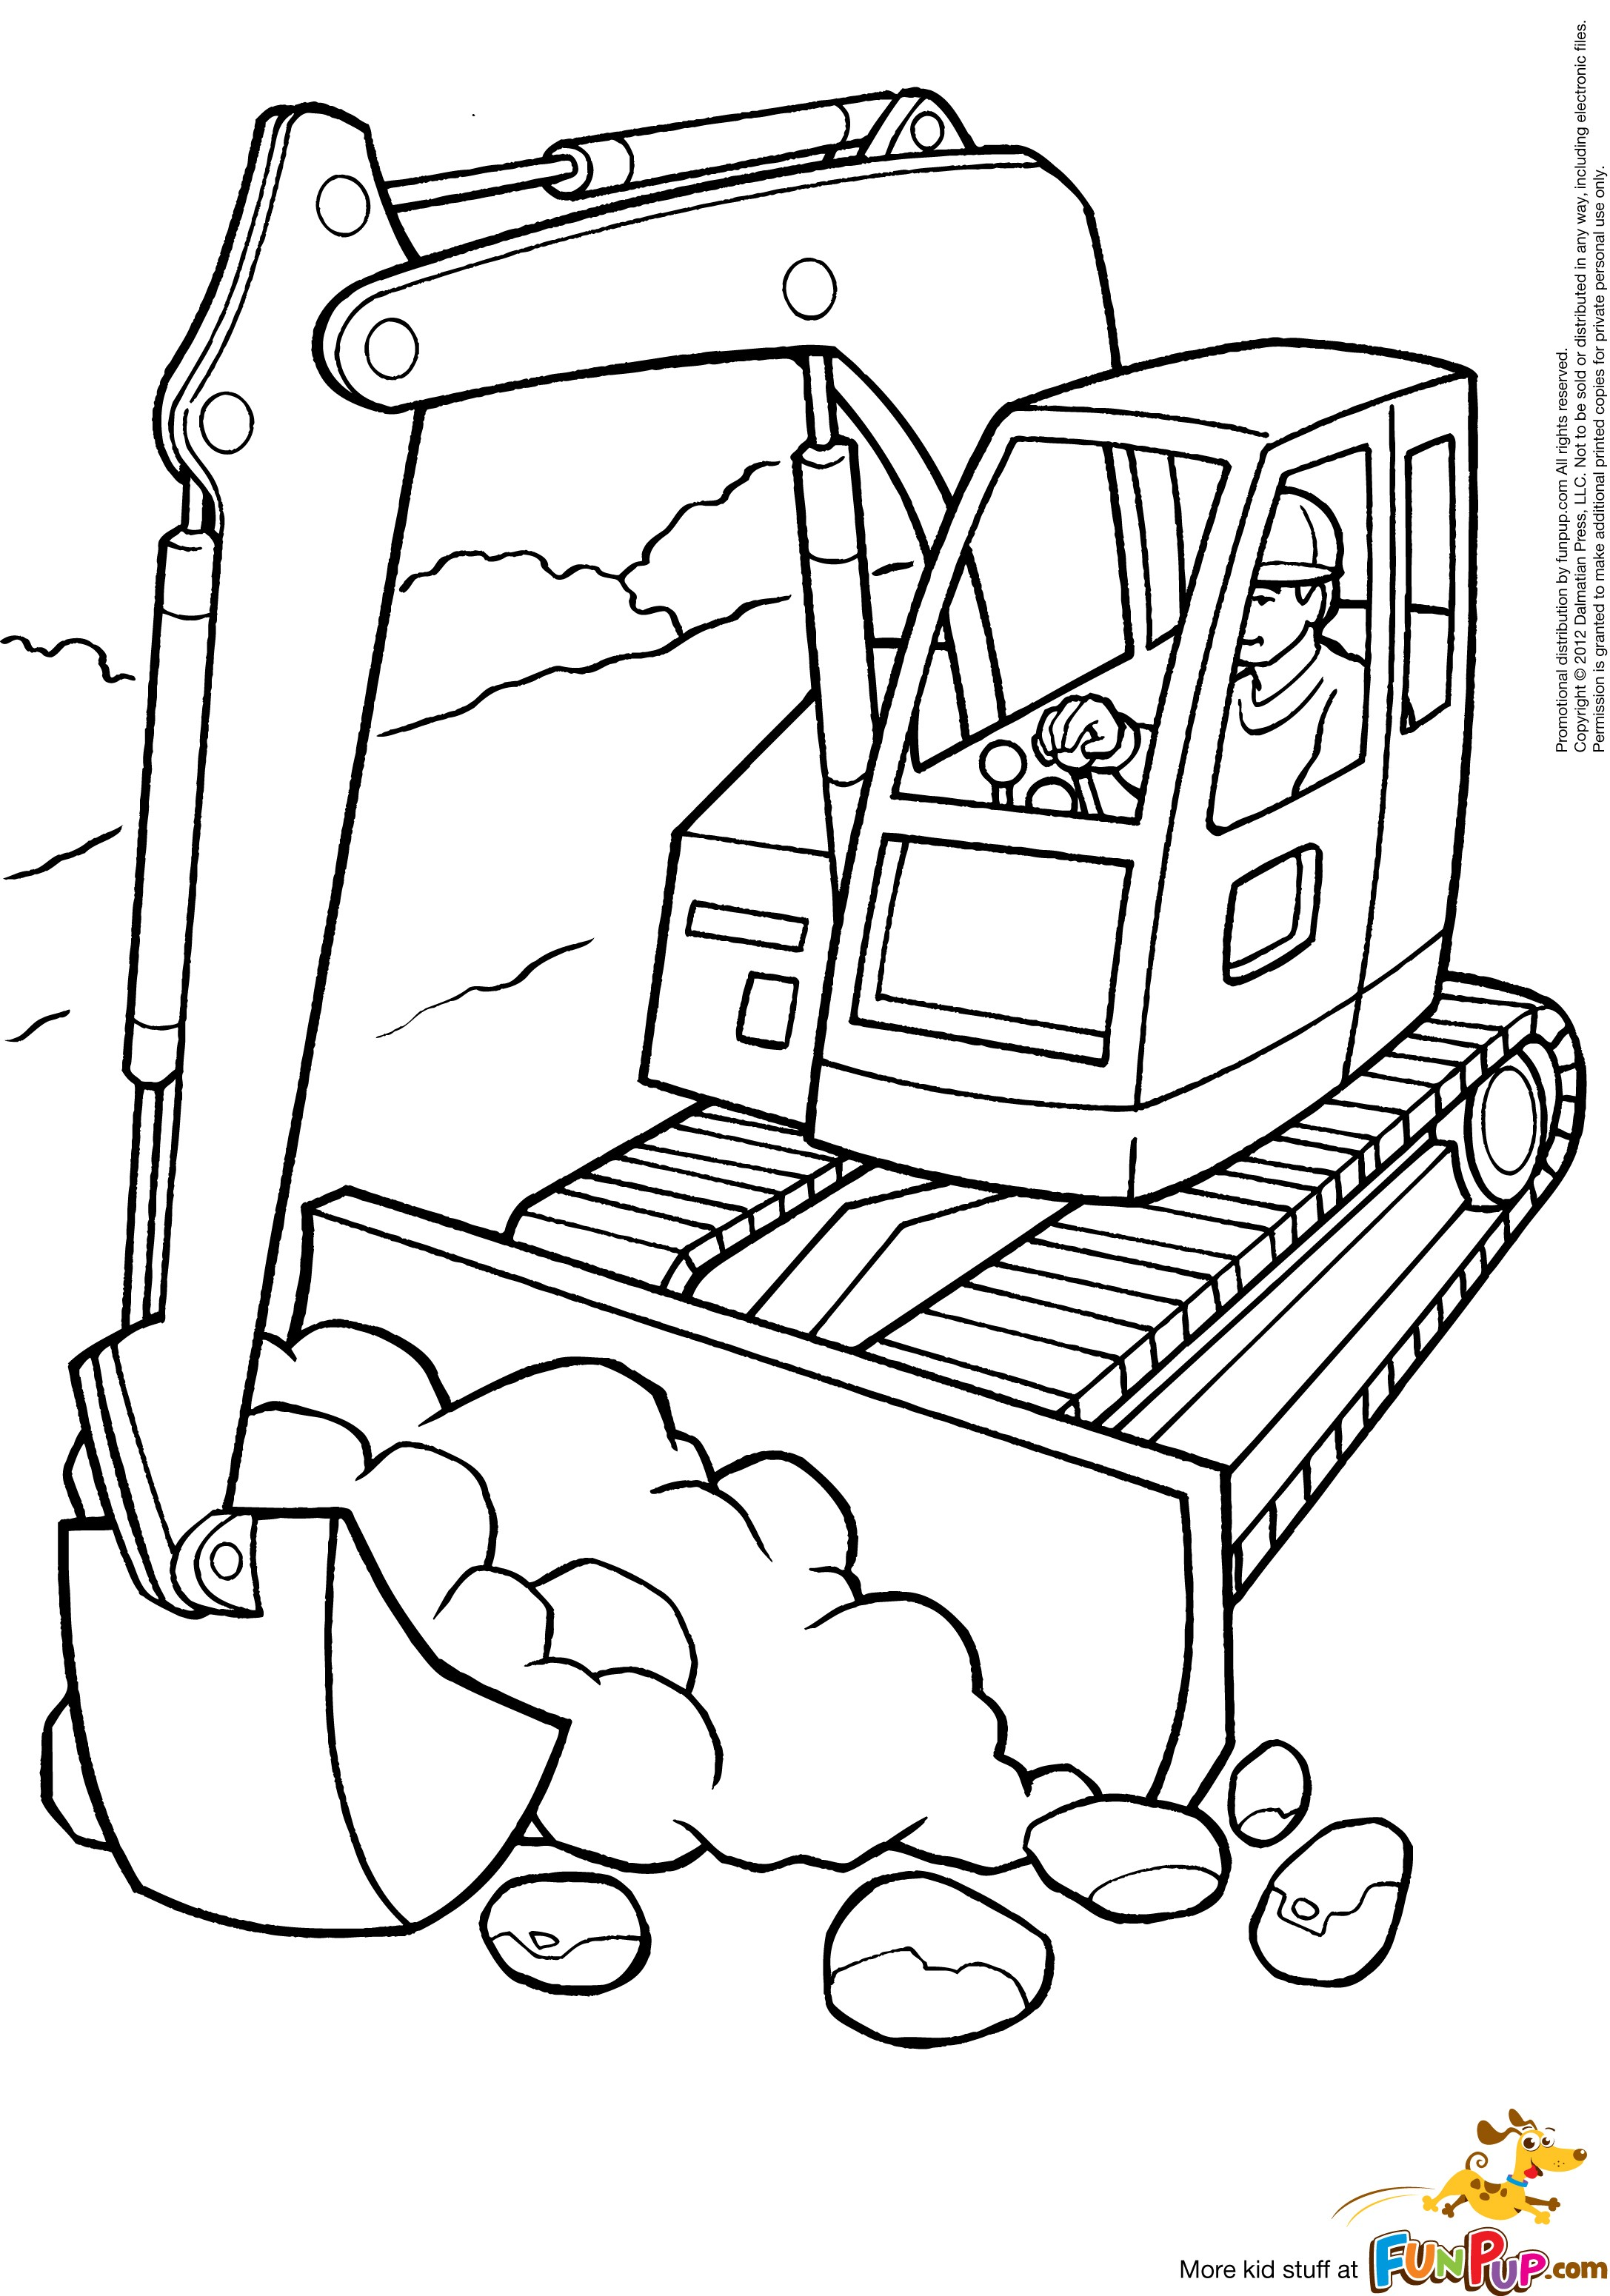 digger coloring pages digger sketch at paintingvalleycom explore collection coloring pages digger